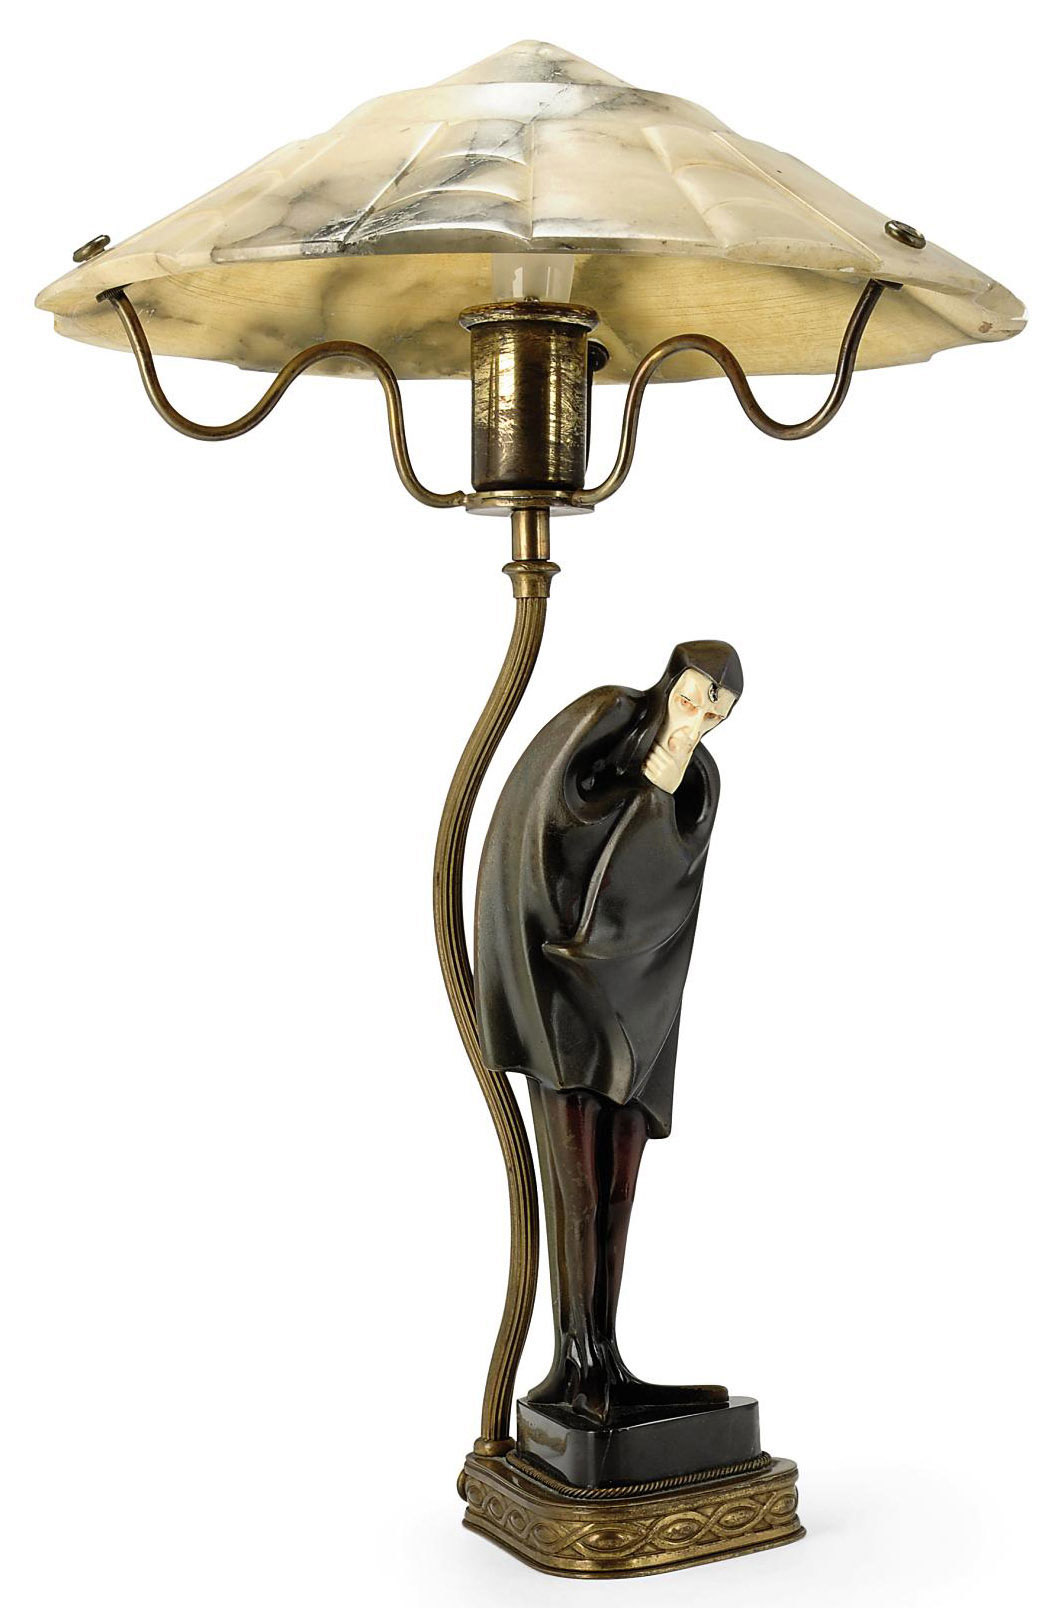 'MEPHISTOPHELES' A COLD-PAINTED BRONZE AND IVORY FIGURE BY ROLAND PARIS MOUNTED AS A LAMP WITH ALABASTER SHADE